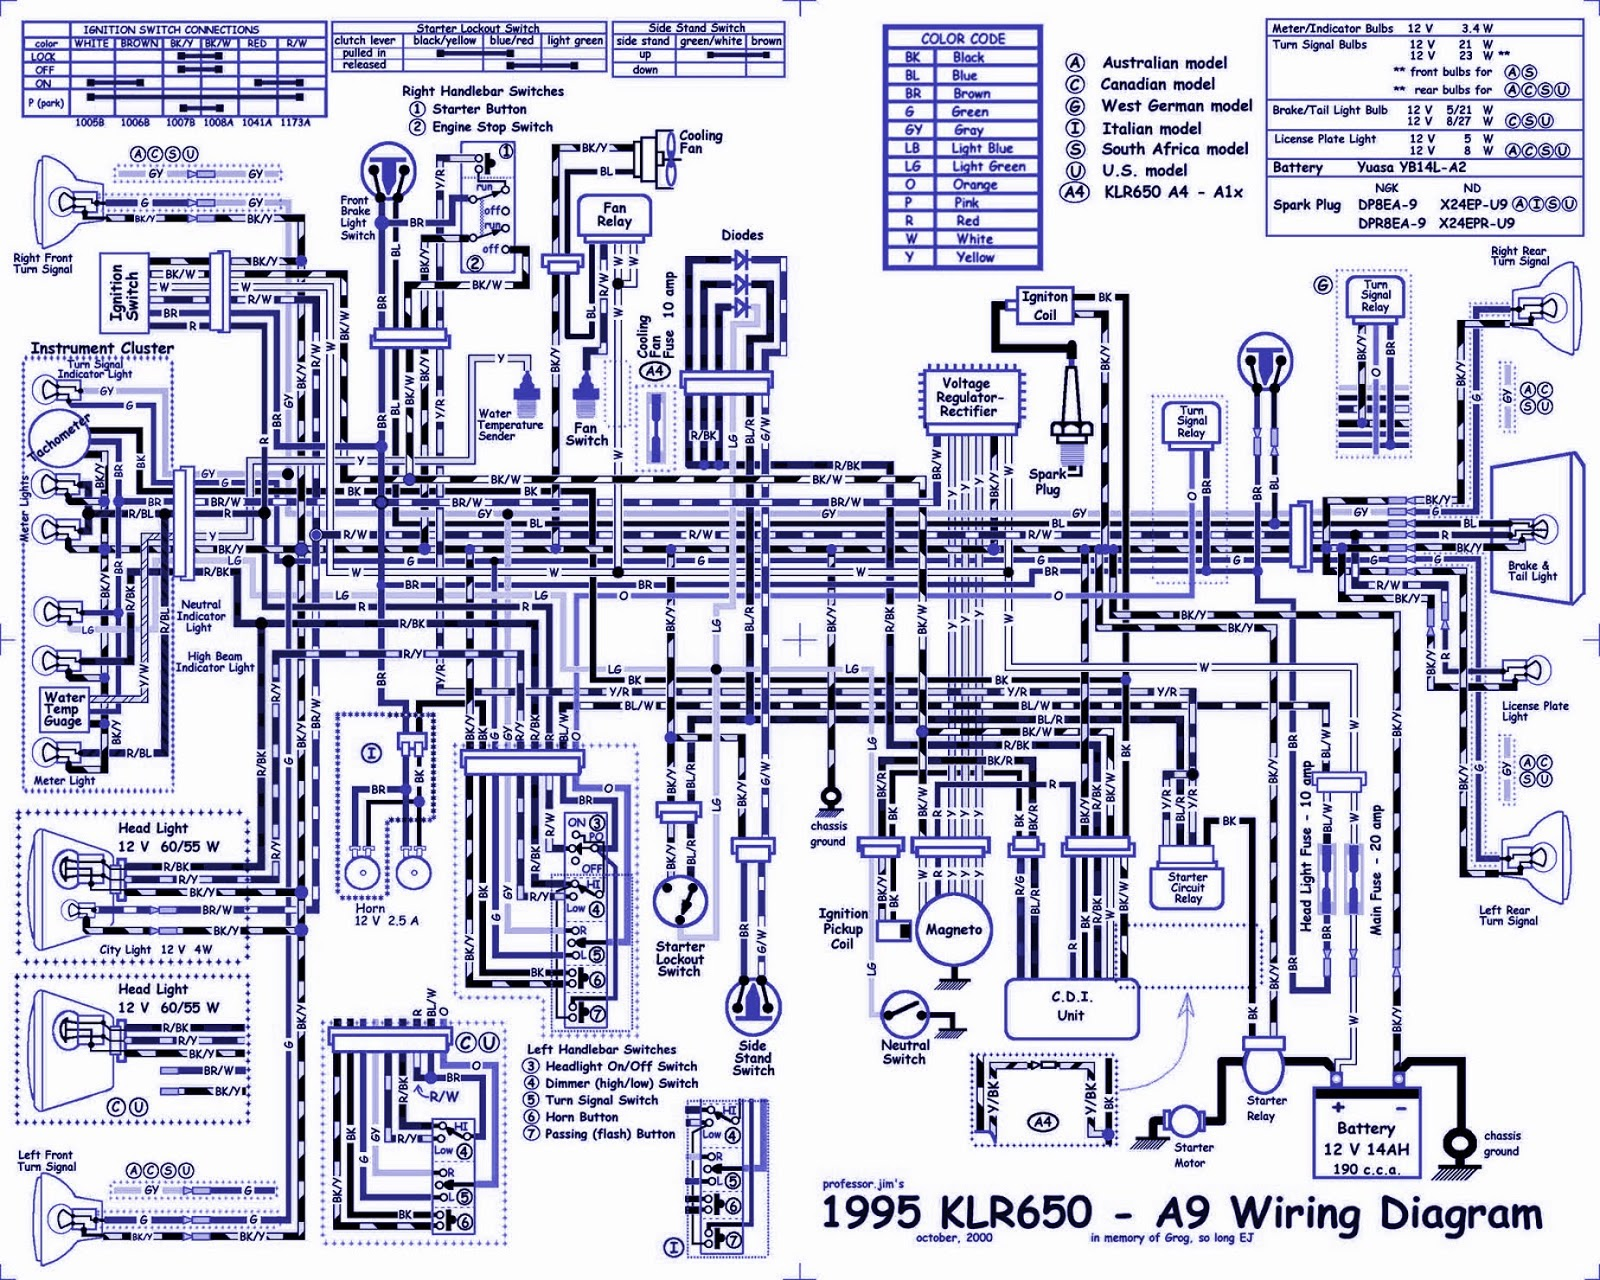 1995 Chevy Impala Ss Engine Diagram Electrical Schematics Diagrams Wiring 95 Illustration Of U2022 Jeep Wrangler